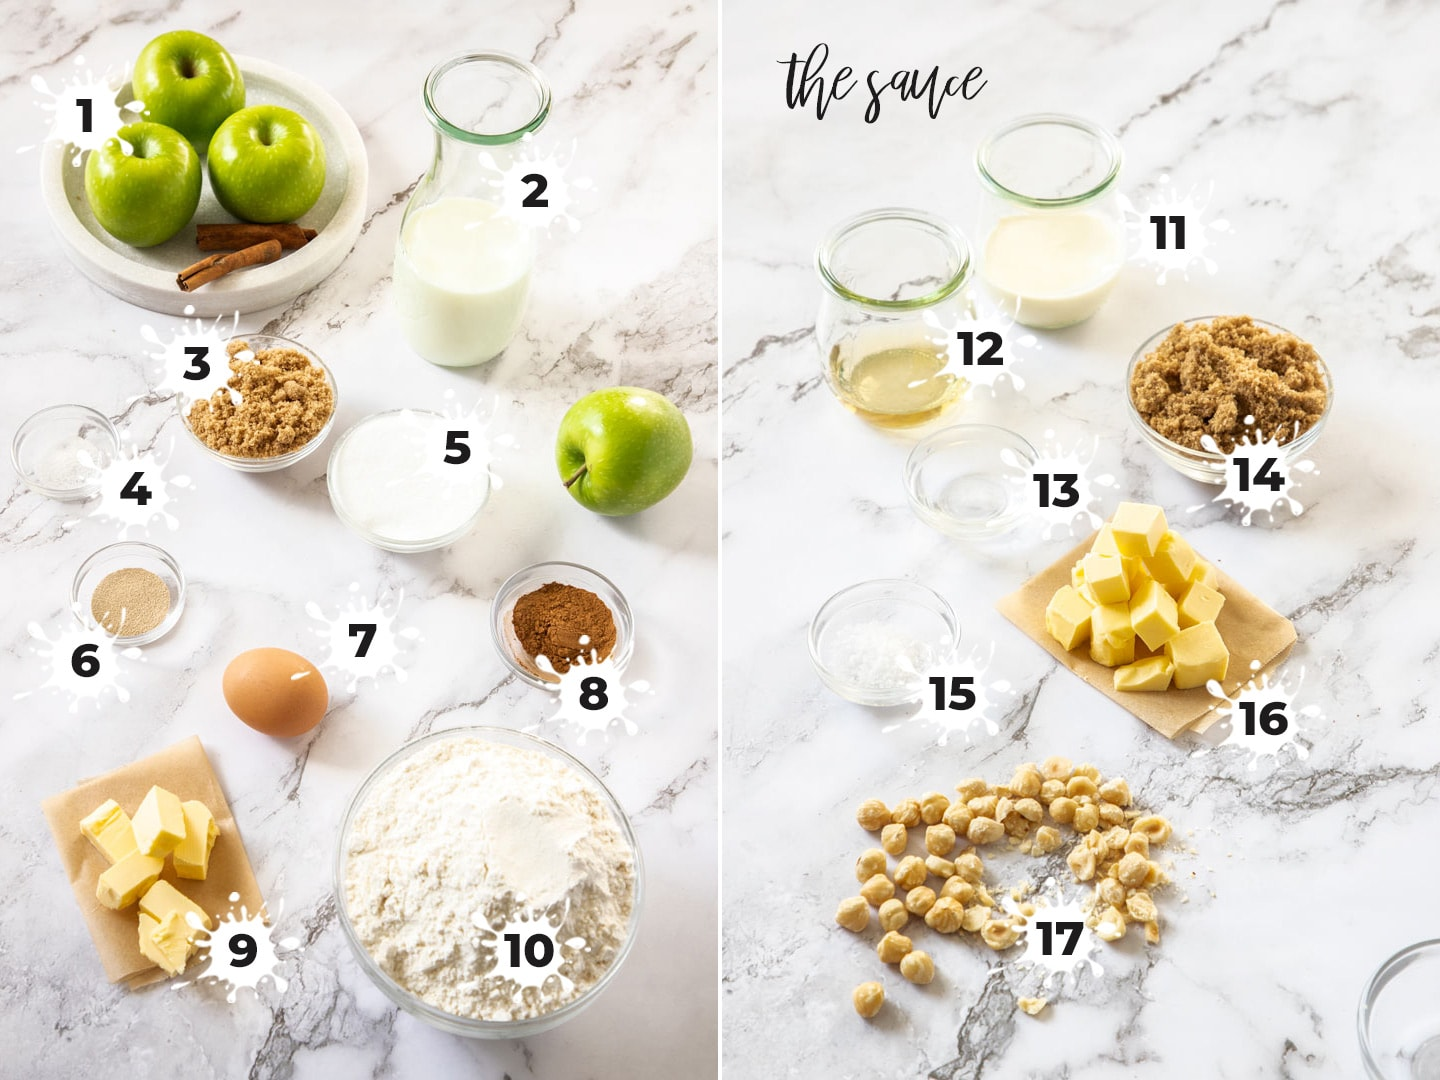 Ingredients laid out for apple cinnamon rolls